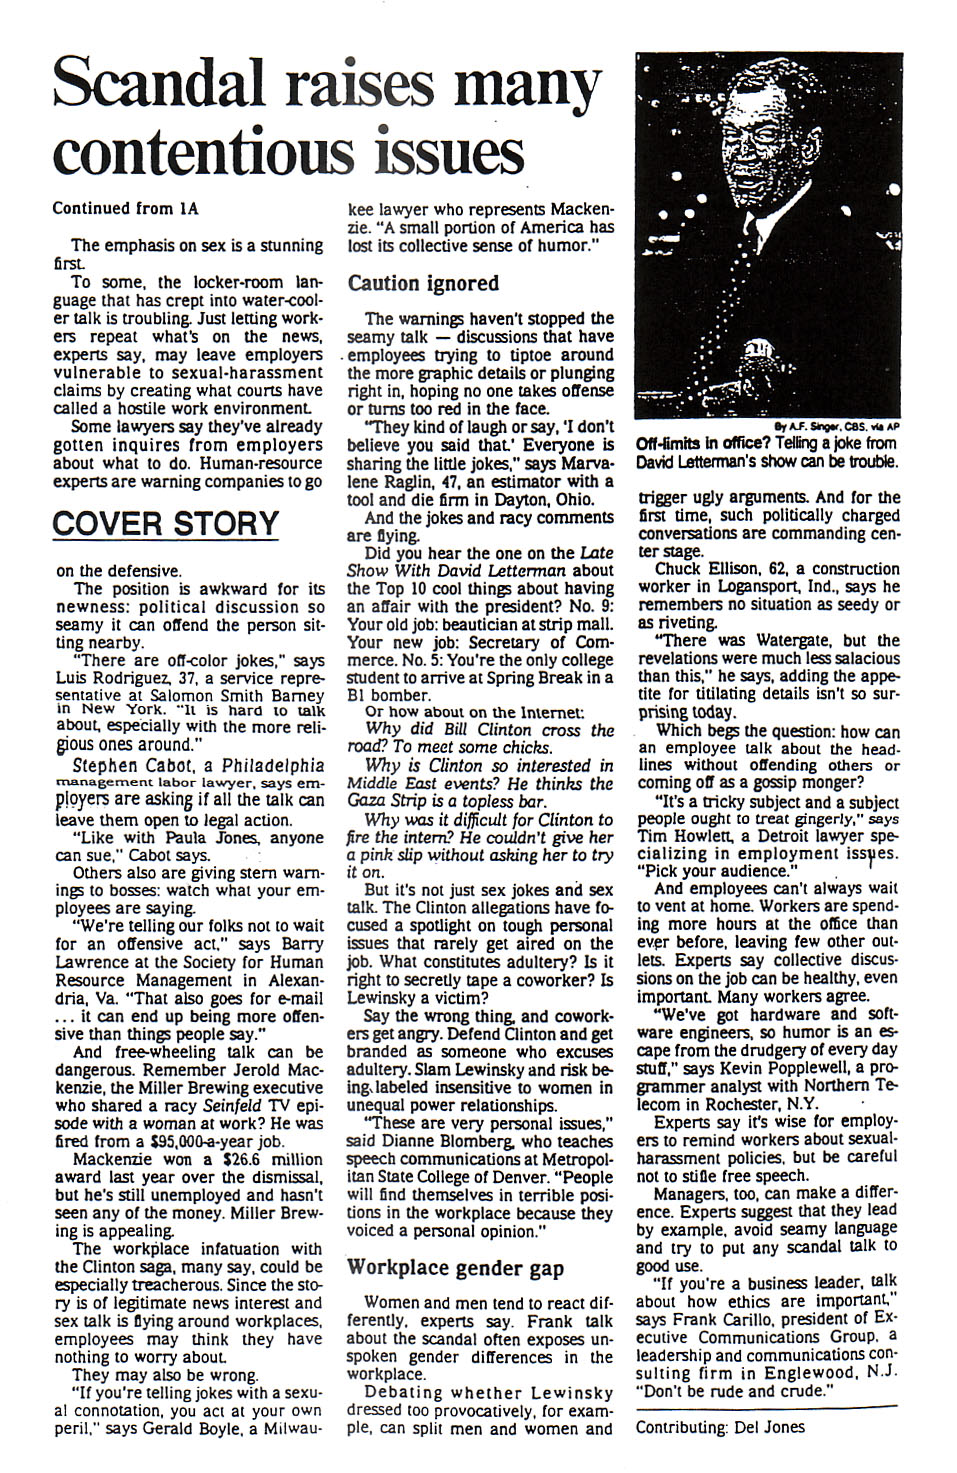 usa today-june 12-14, 1998-mitsubishi case to be widely felt page 2.jpg